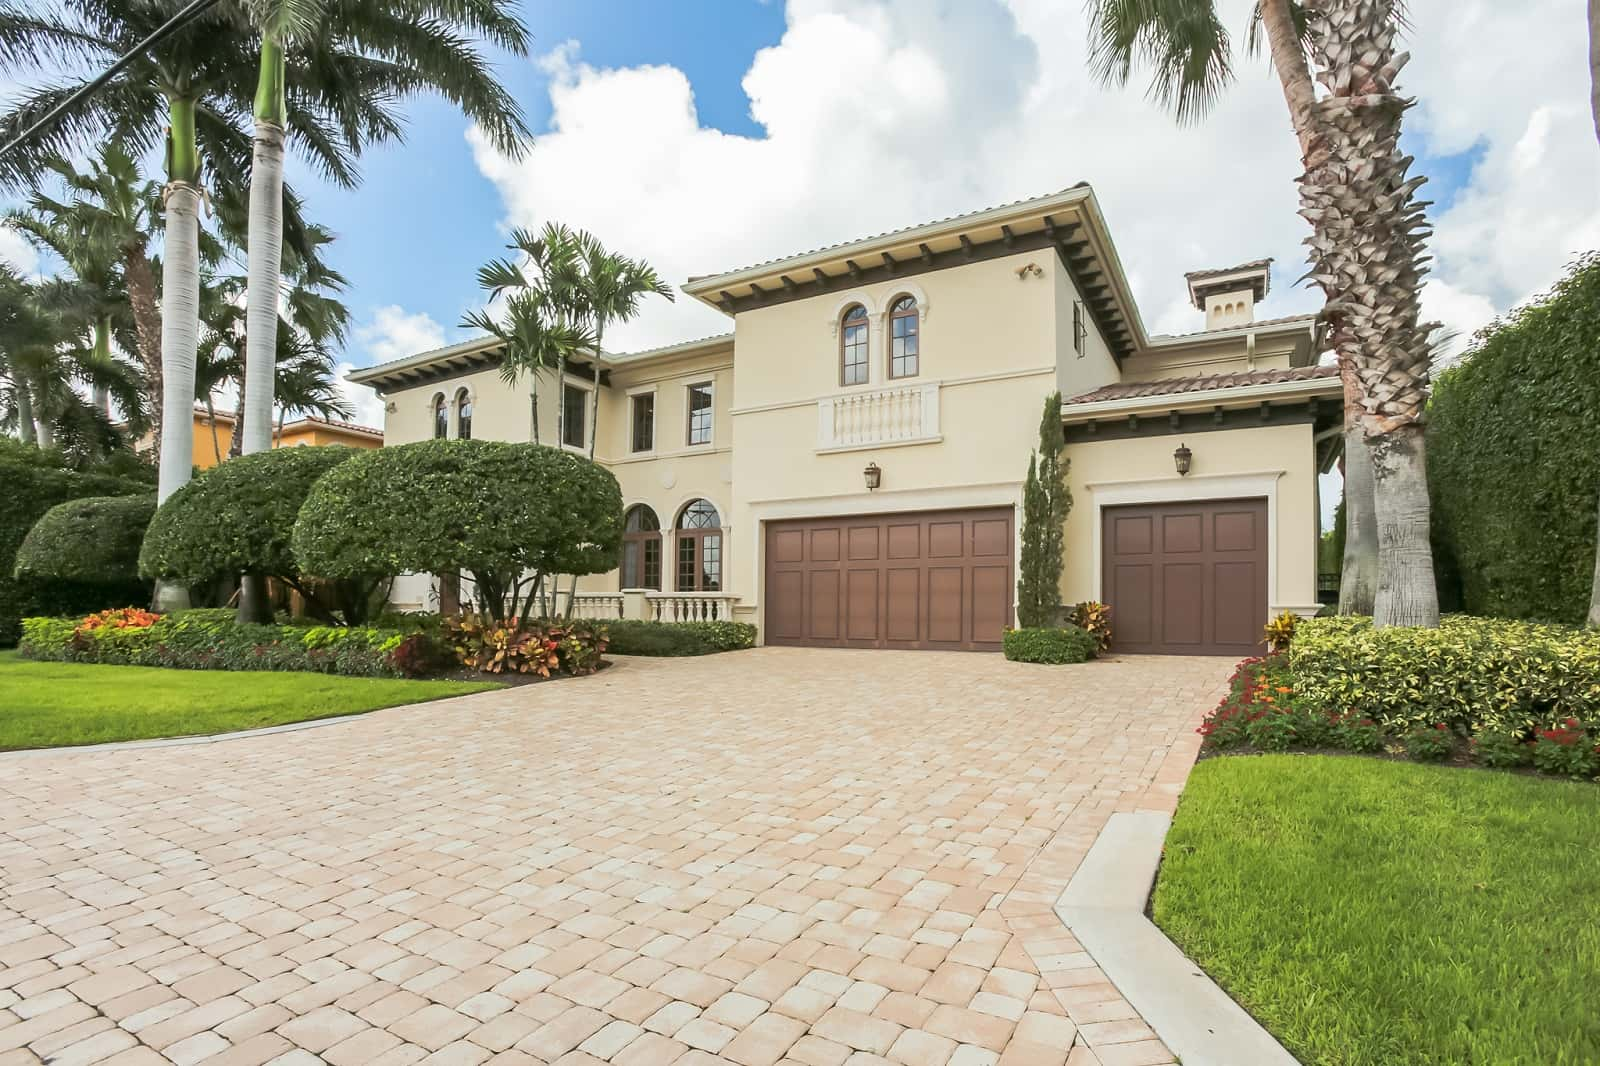 Real Estate Photography in Boca Raton - FL - USA - Front View